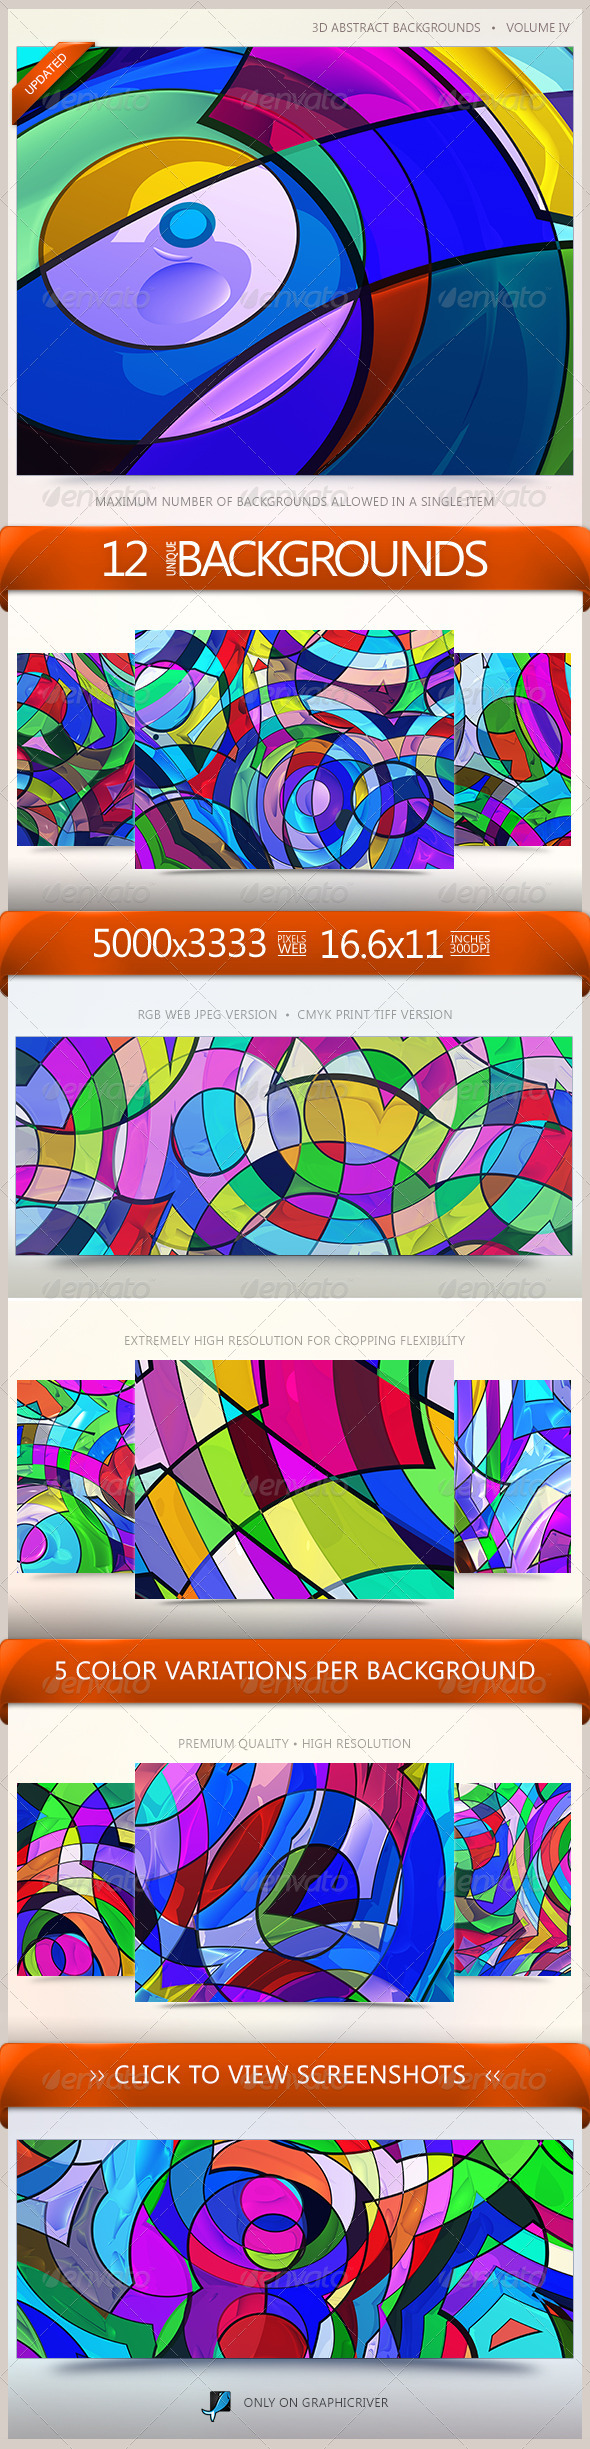 3D Abstract Backgrounds Volume 4 - Abstract Backgrounds